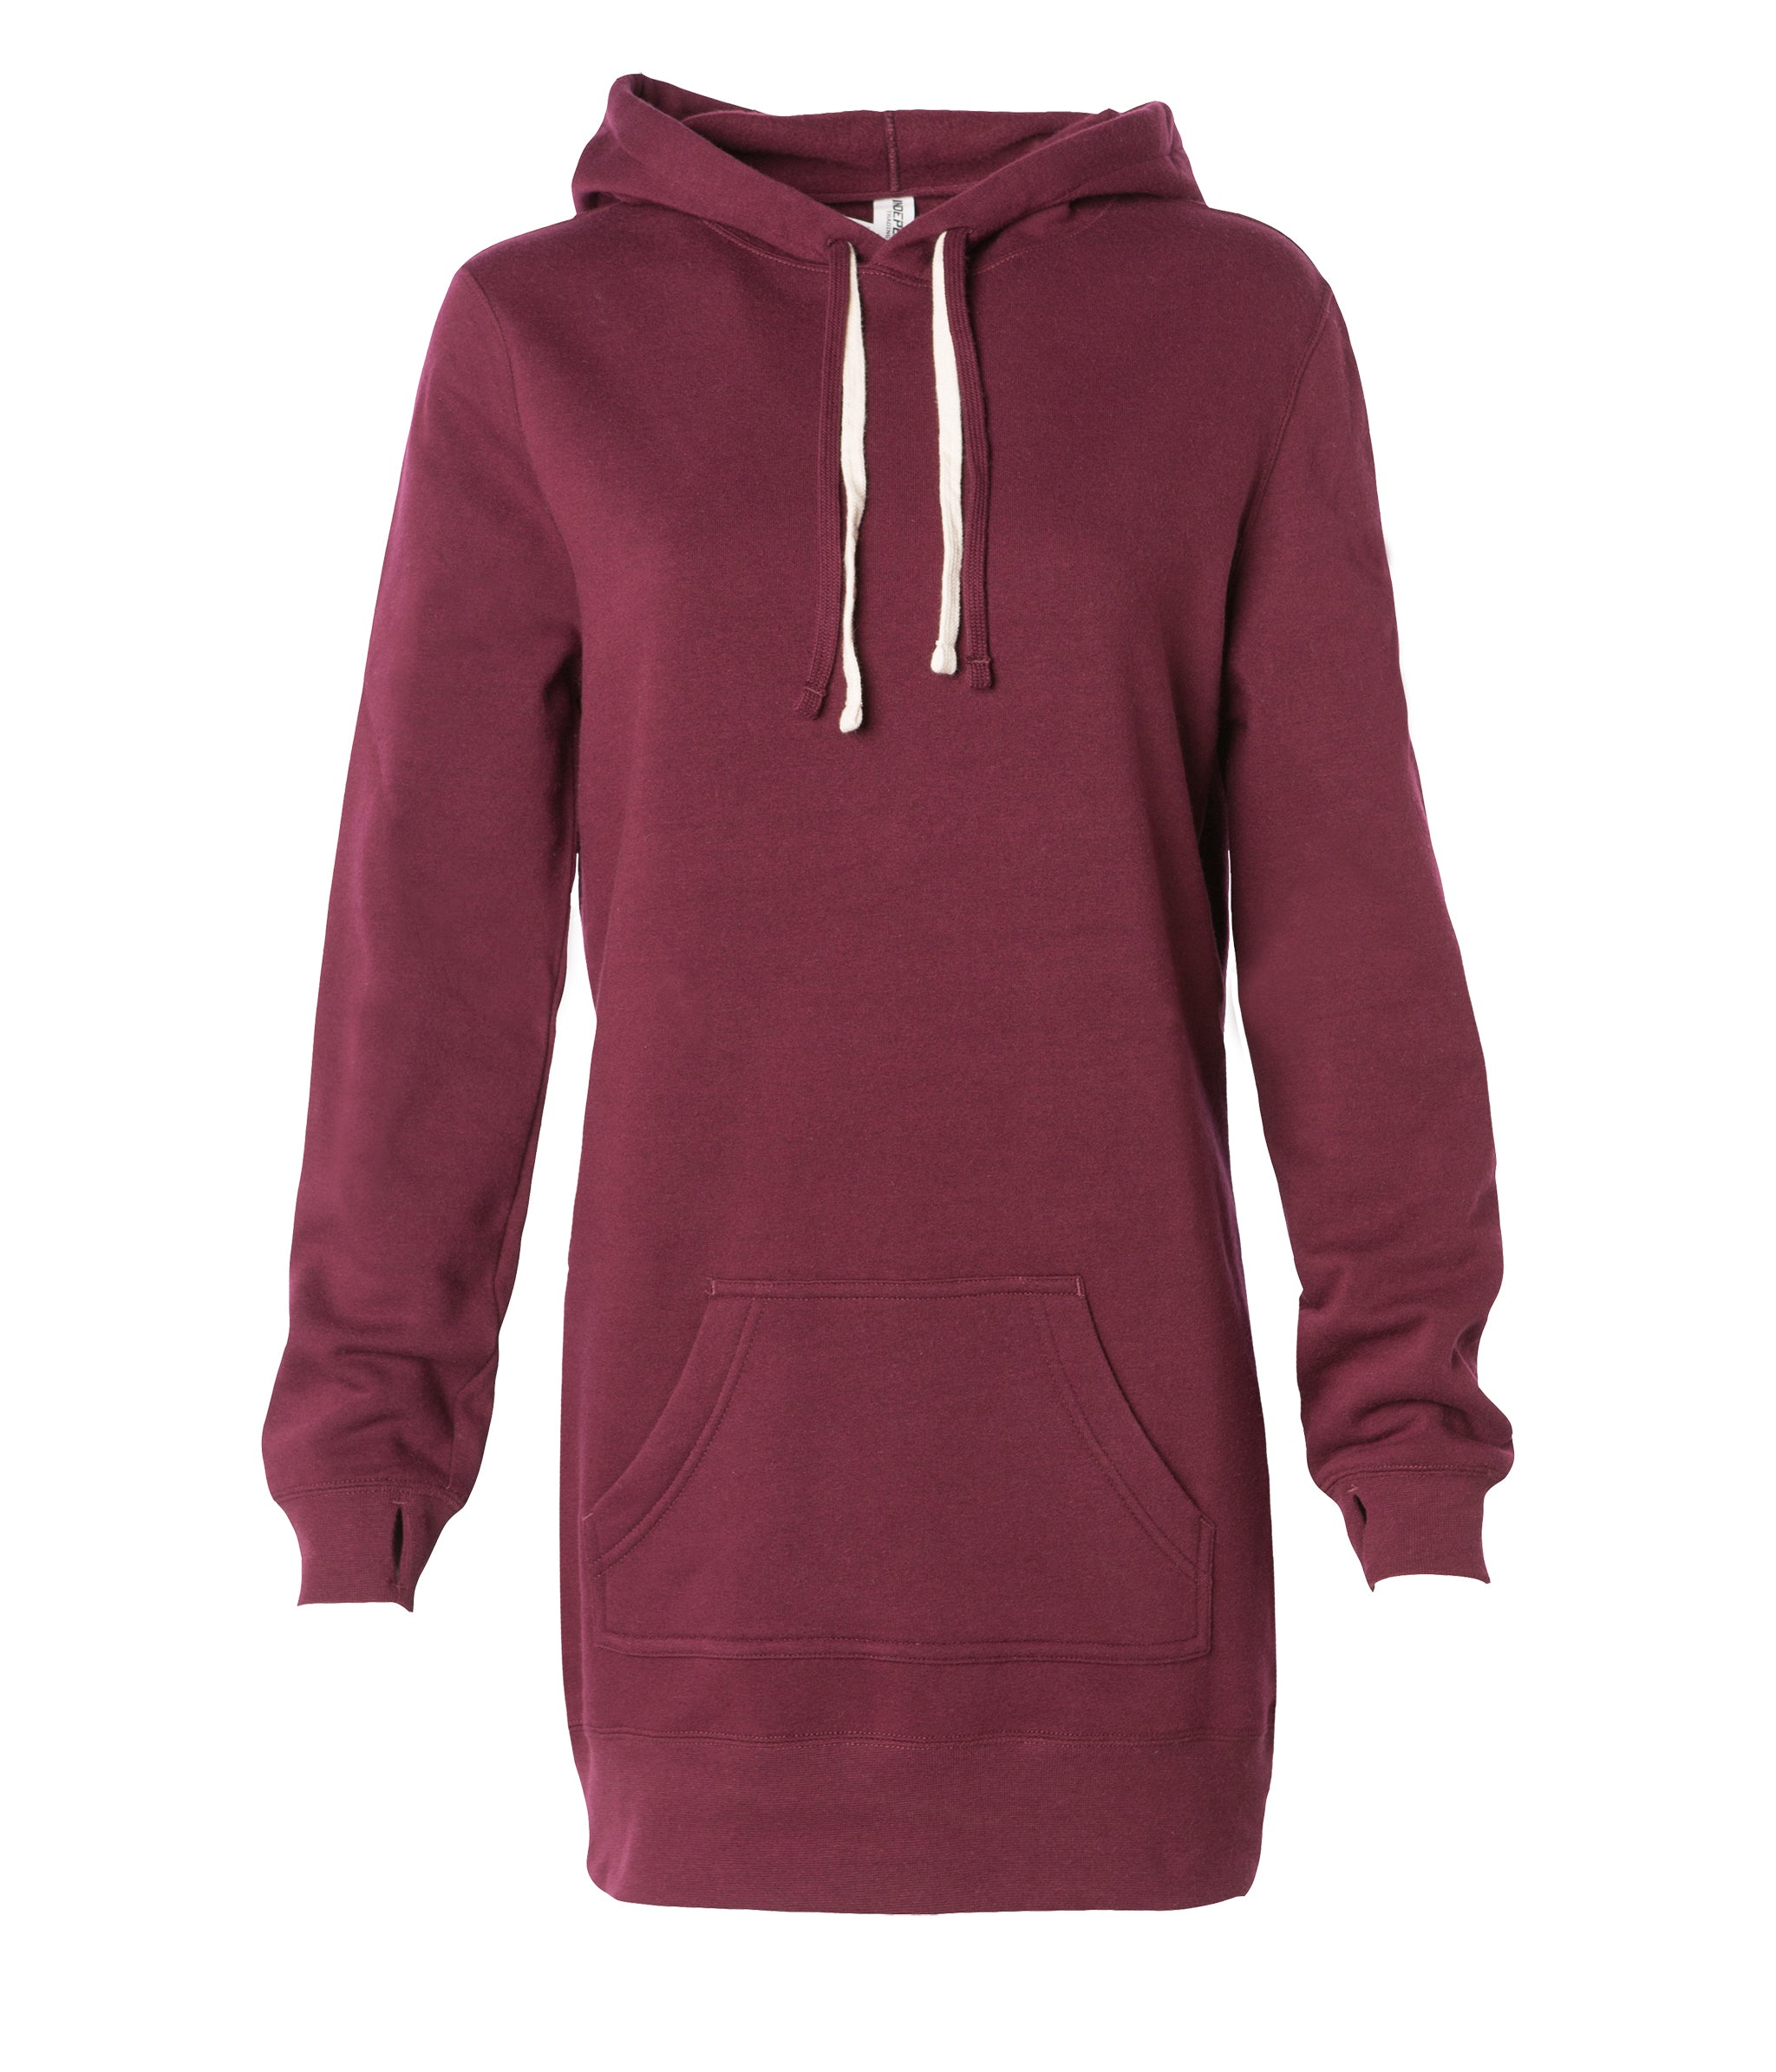 80d031c792ce Womens Pullover Hooded Sweatshirt Dress | Independent Trading Company